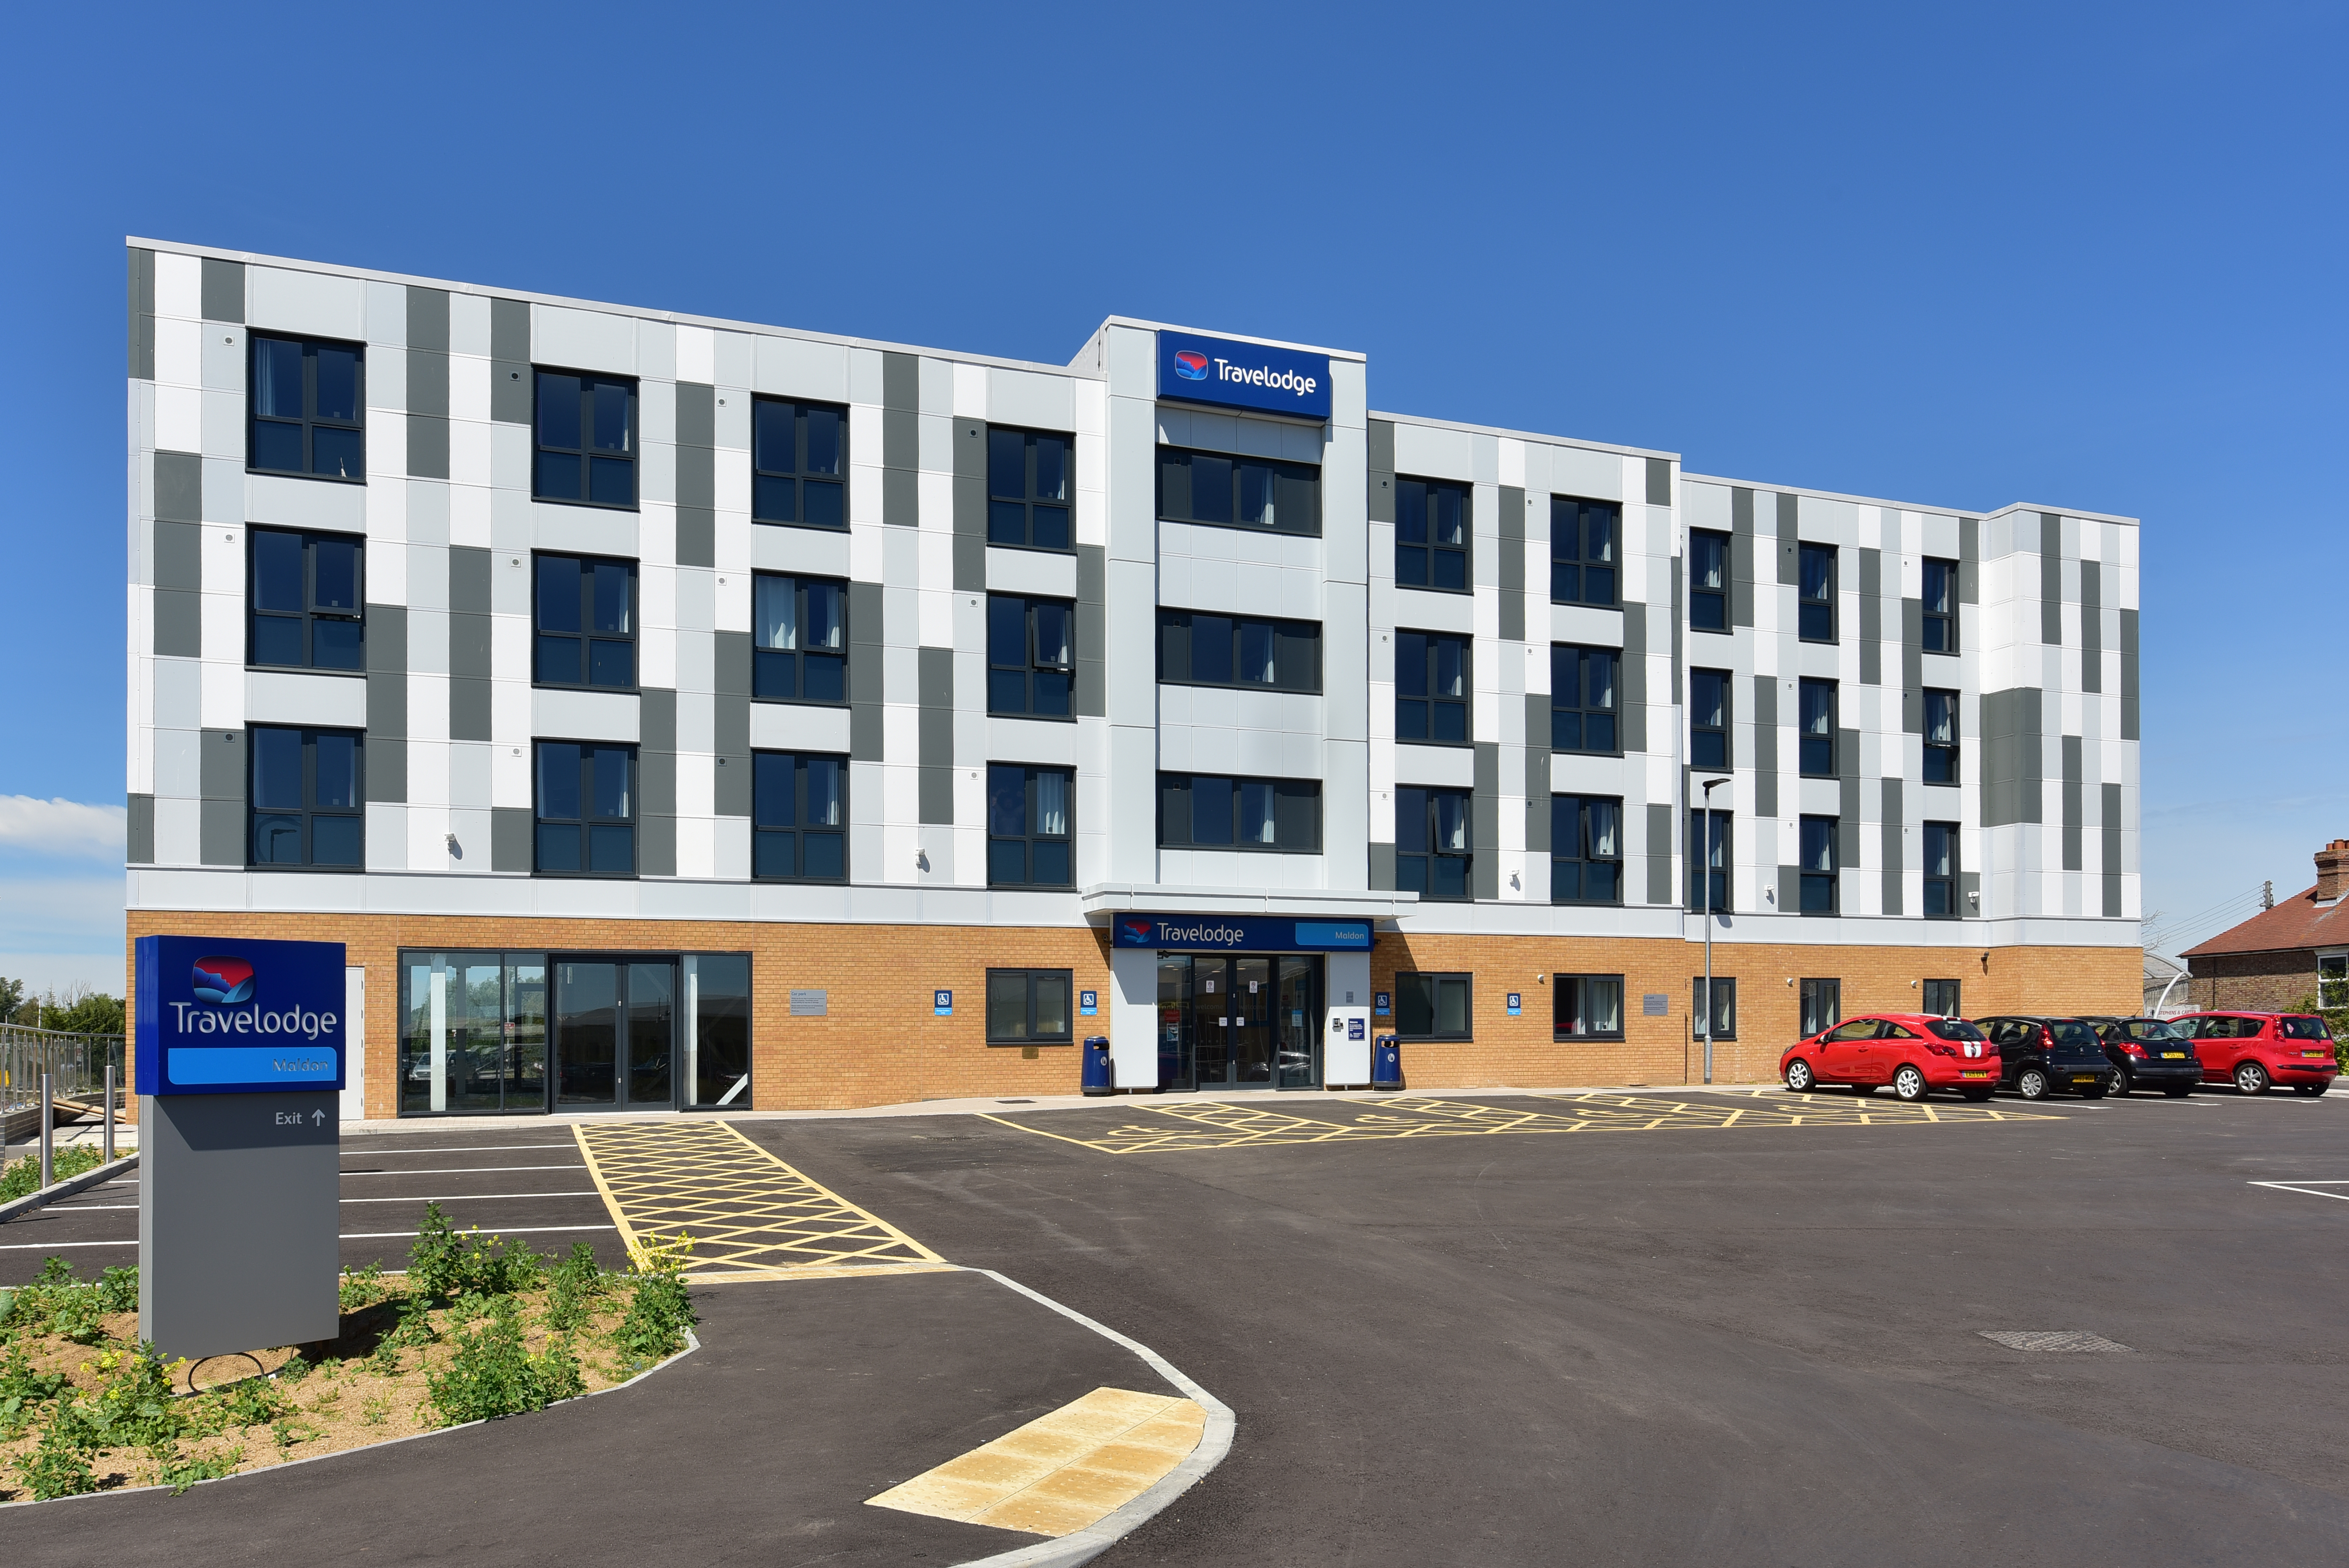 Travelodge, Maldon